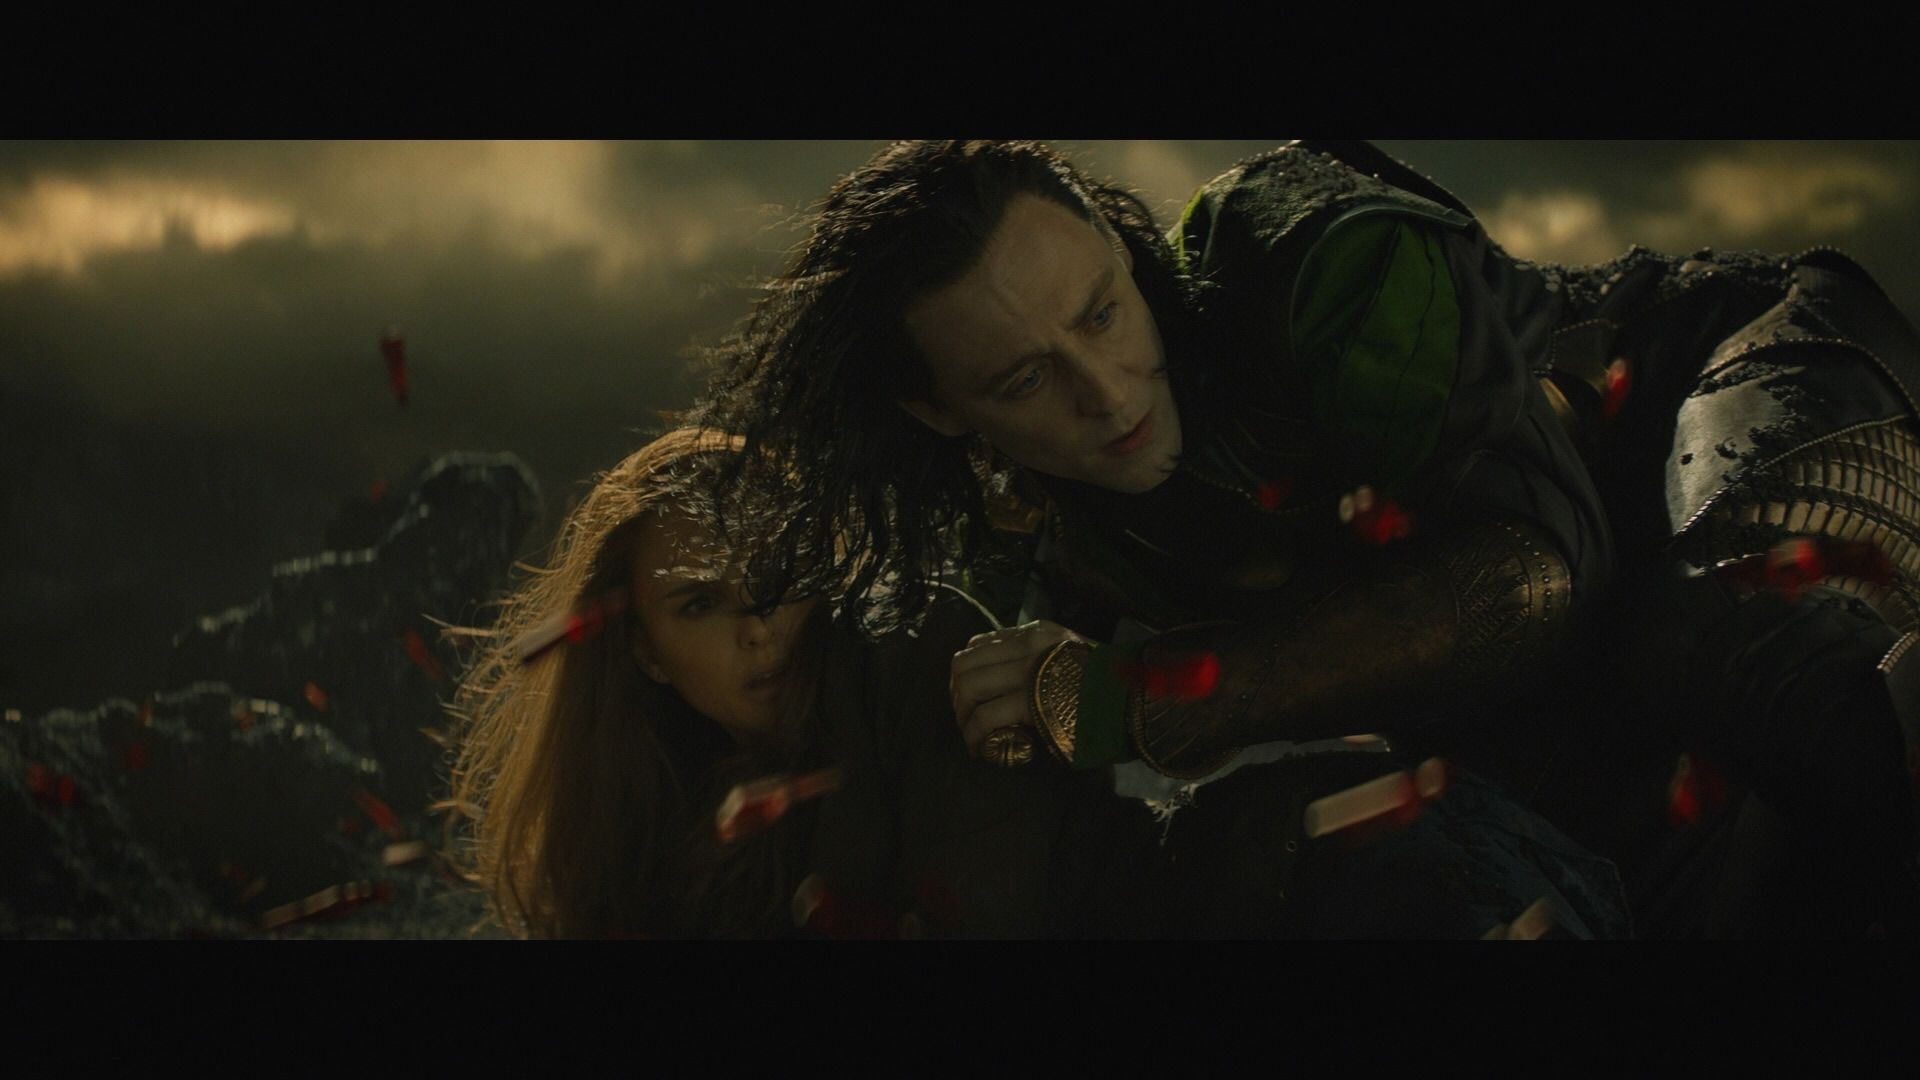 loki and jane images thor the dark world screencaps hd wallpaper and